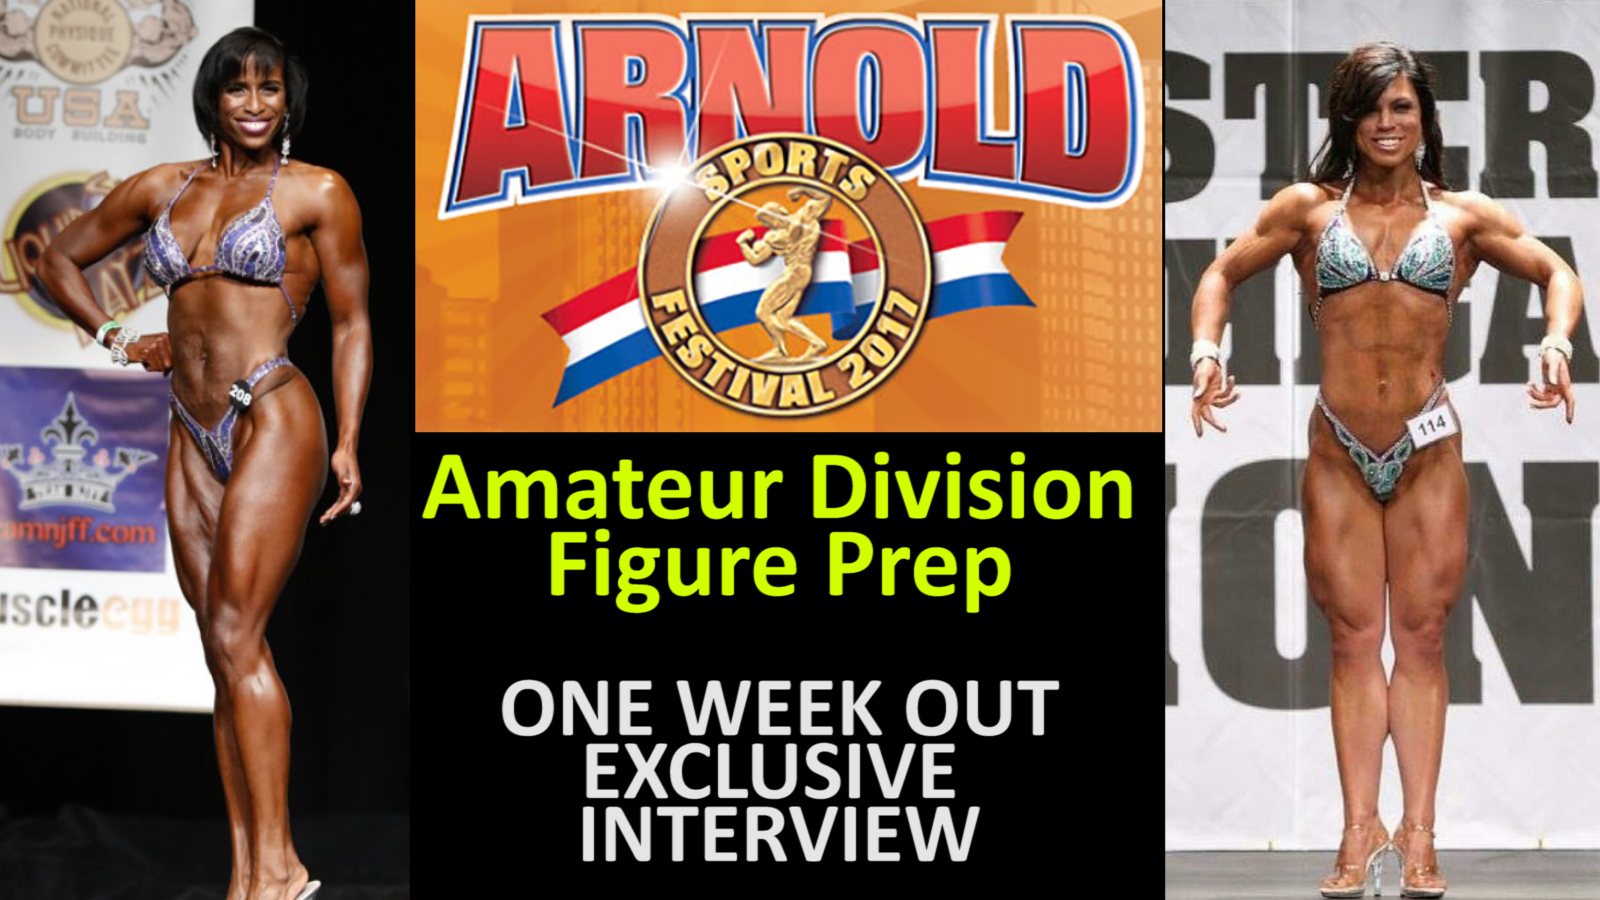 Getting Ready for the Arnold Amateur - 2 Figure Competitors Ready to Shine